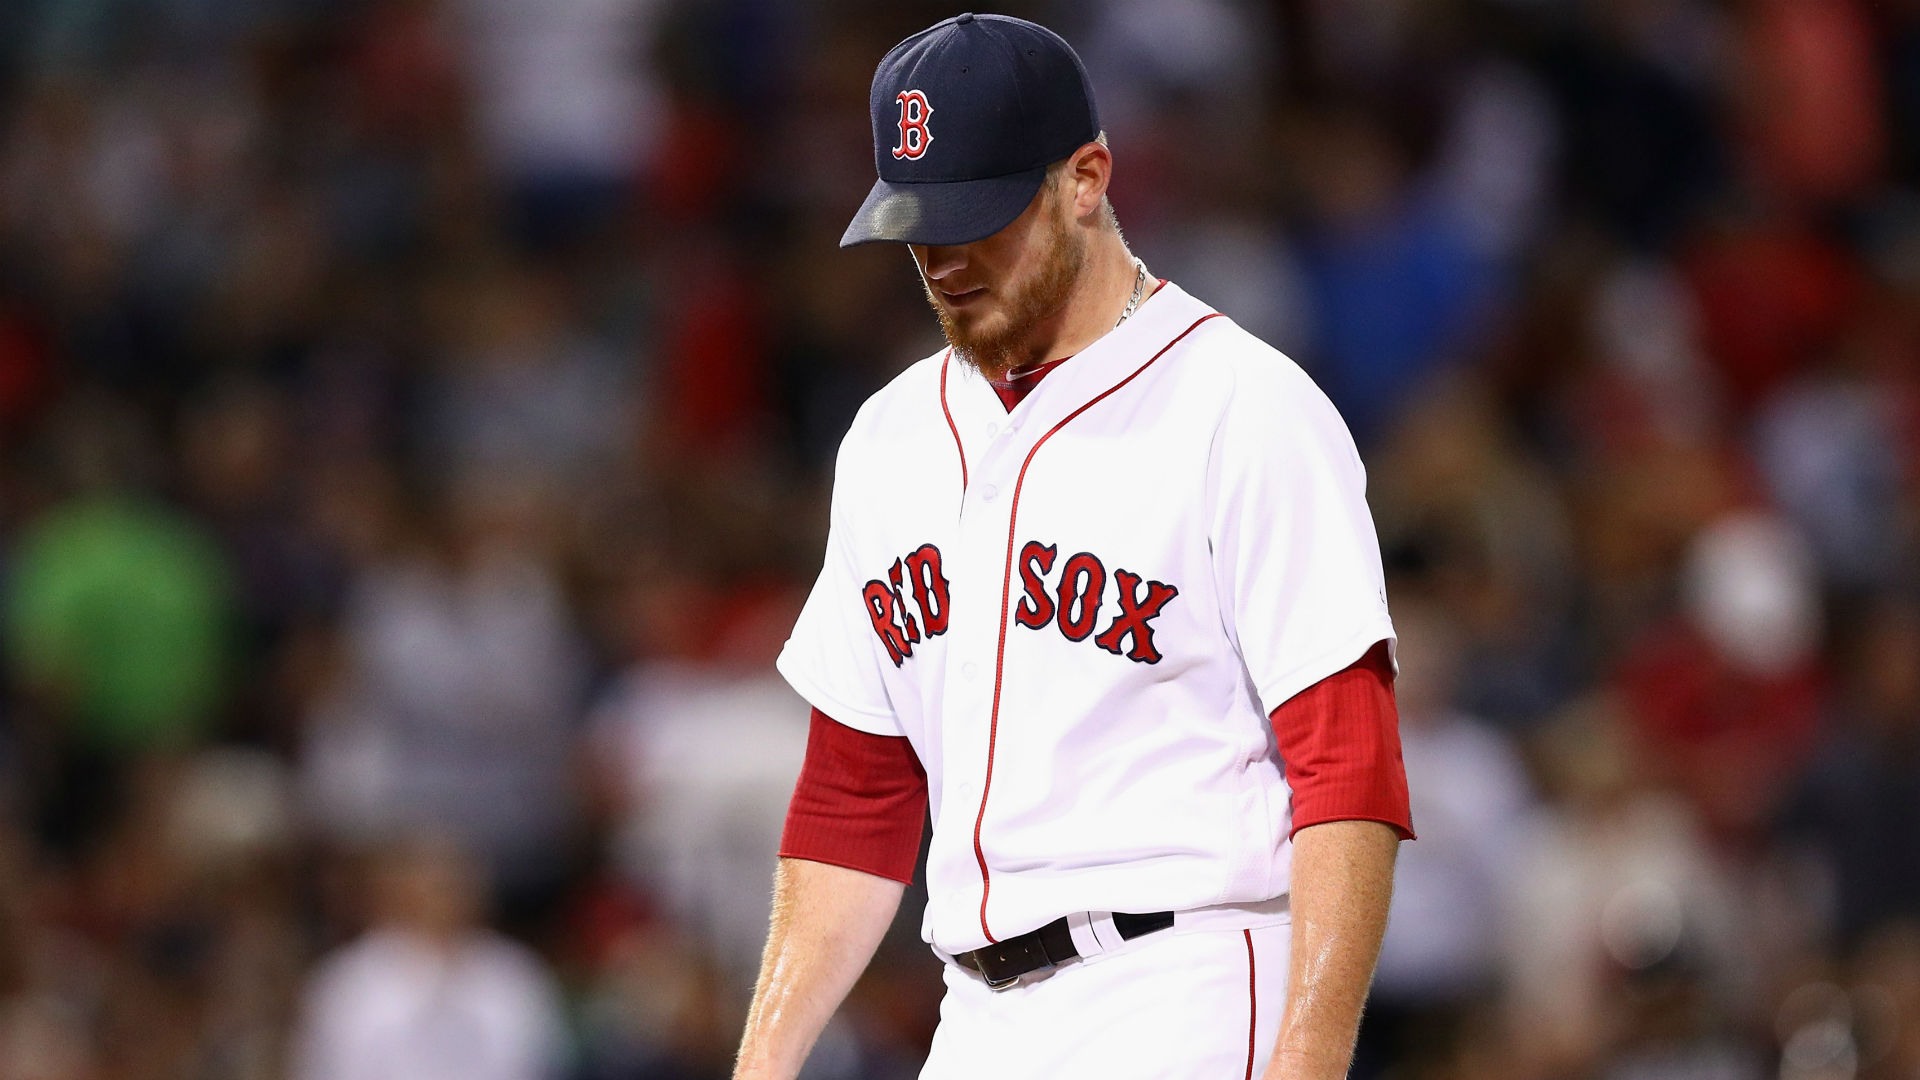 newest 61621 e9325 Craig Kimbrel's price tag reportedly dropping? | Sporting News